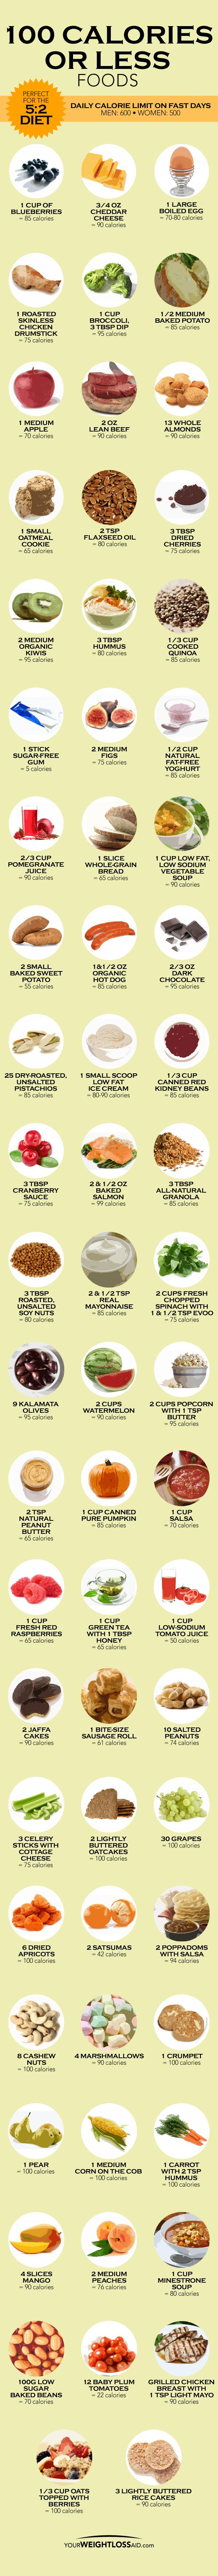 100 calories or less foods If you are on a diet such as the 5:2 Diet it can be difficult to stay within the recommended daily calorie limits. With this helpful infographic you will learn what foods contain fewer than 100 calories.